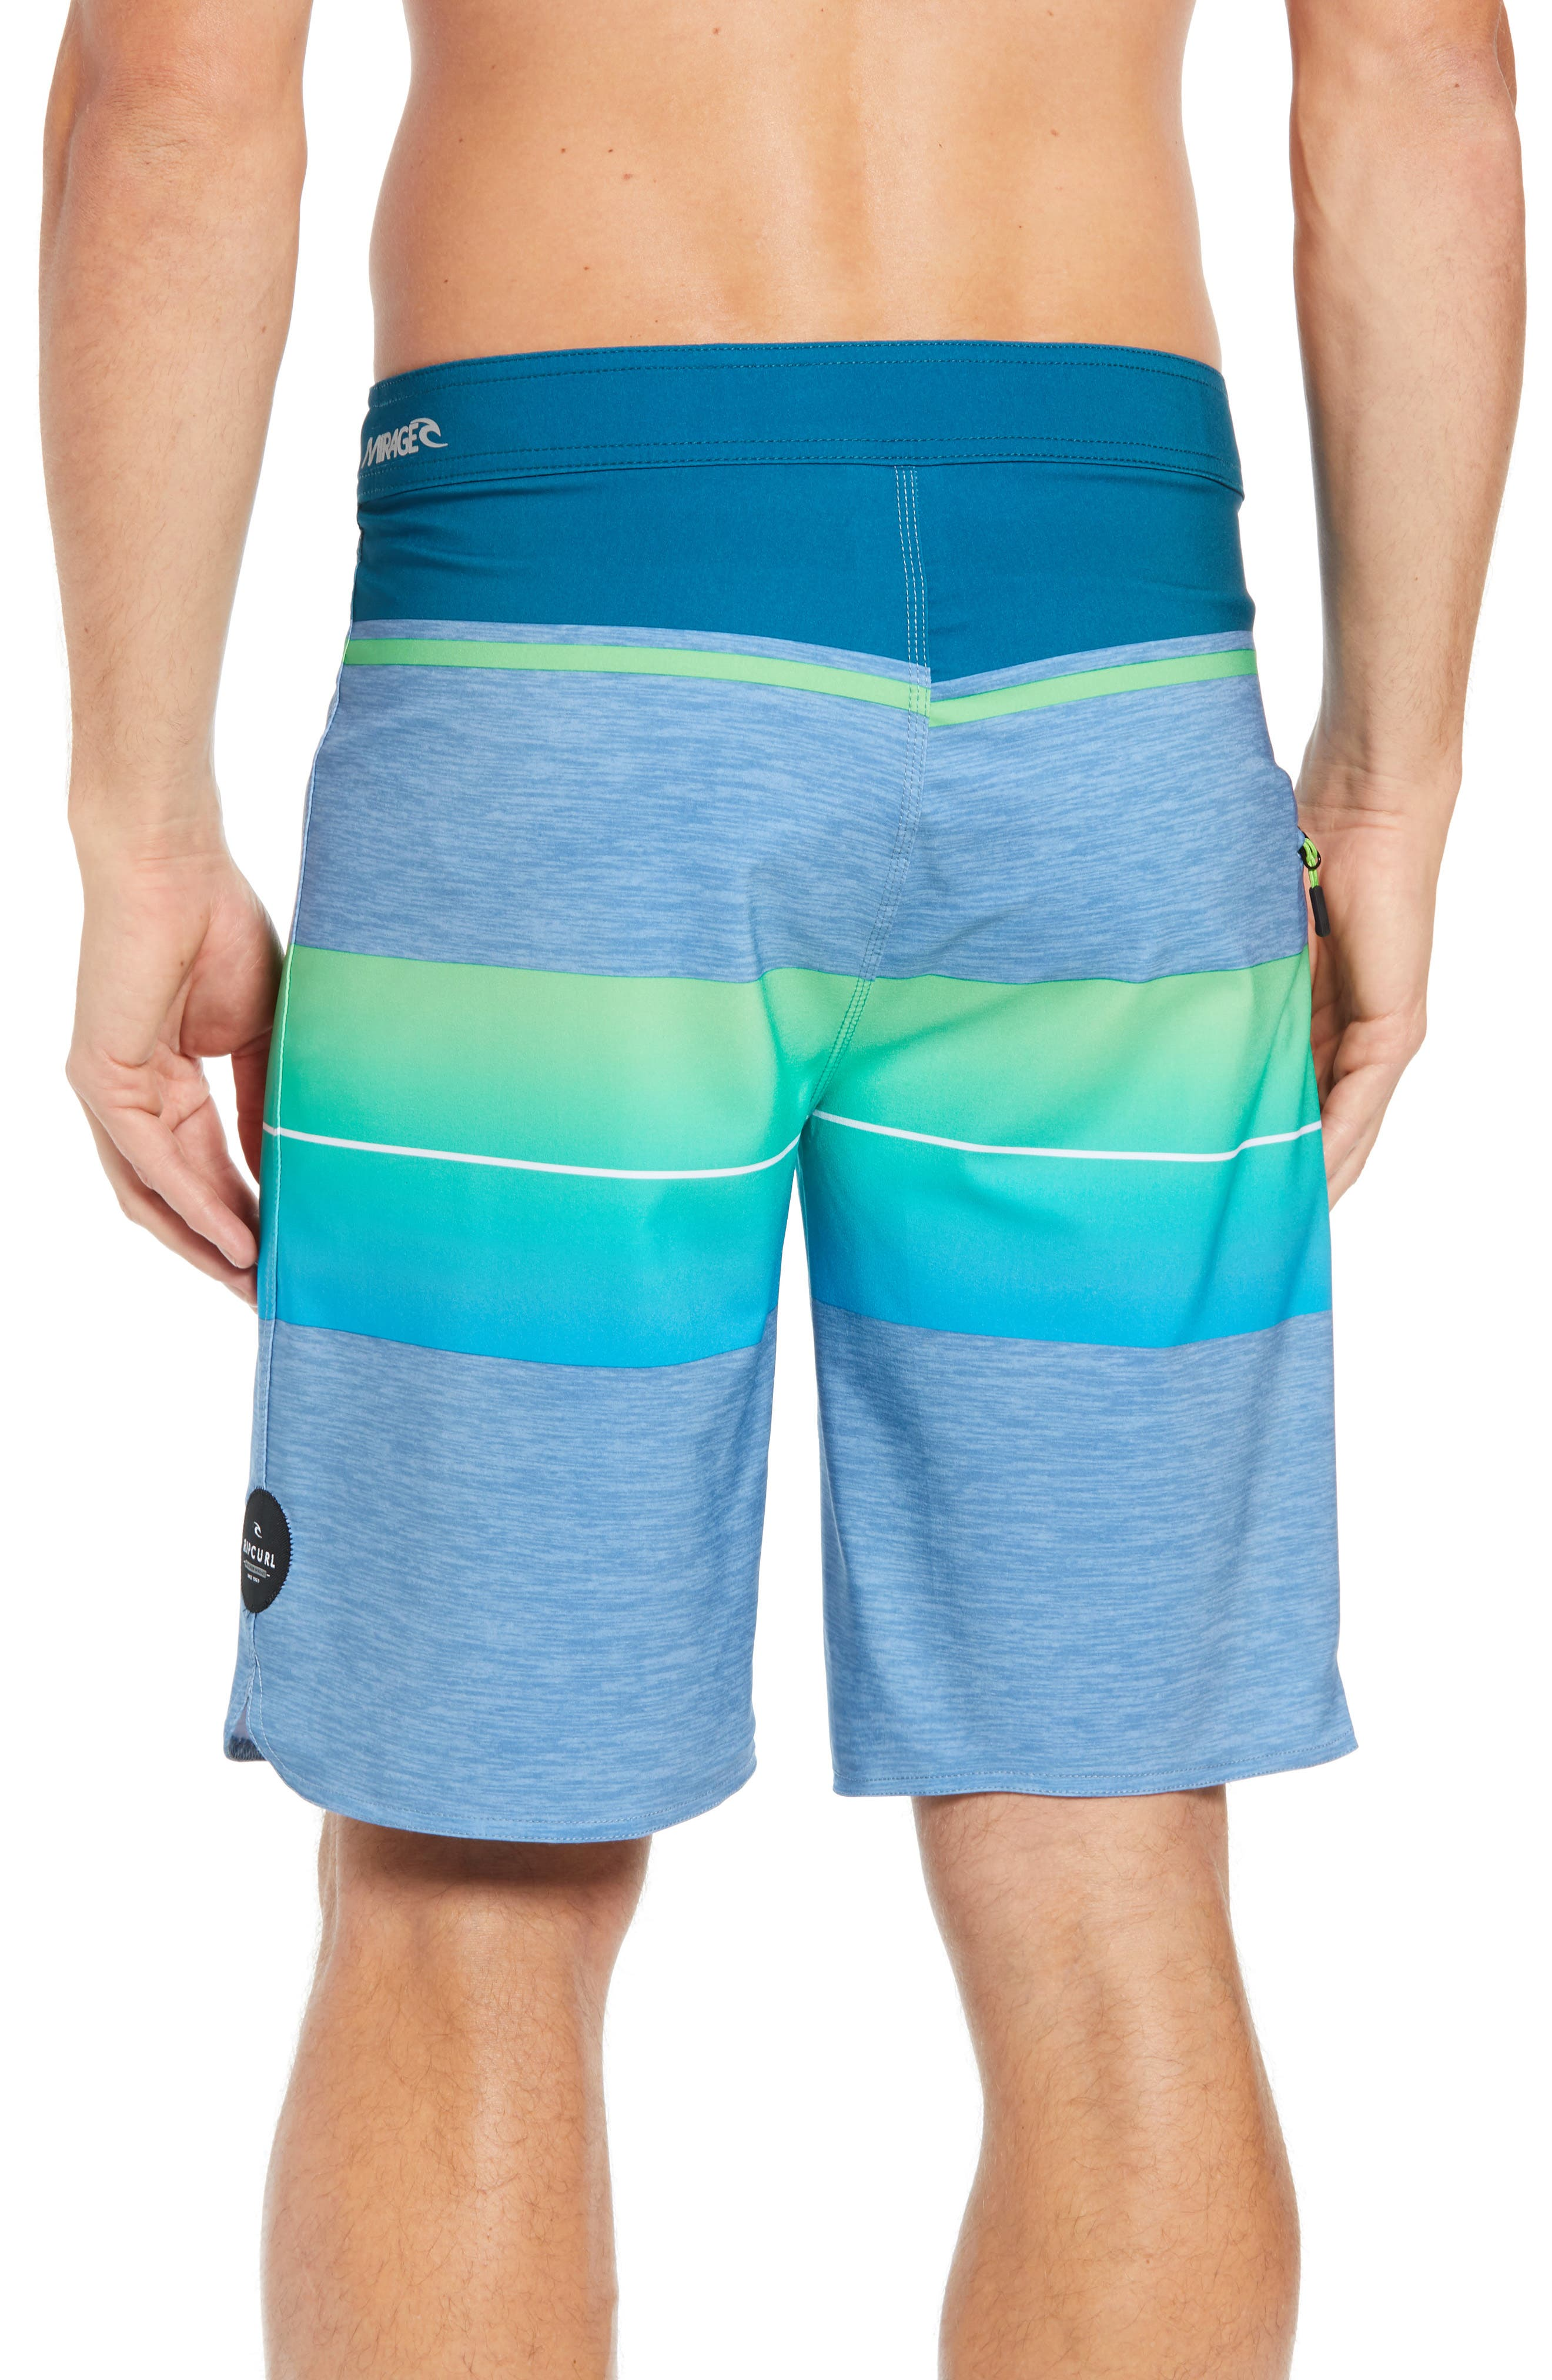 Mirage Eclipse Board Shorts,                             Alternate thumbnail 2, color,                             300